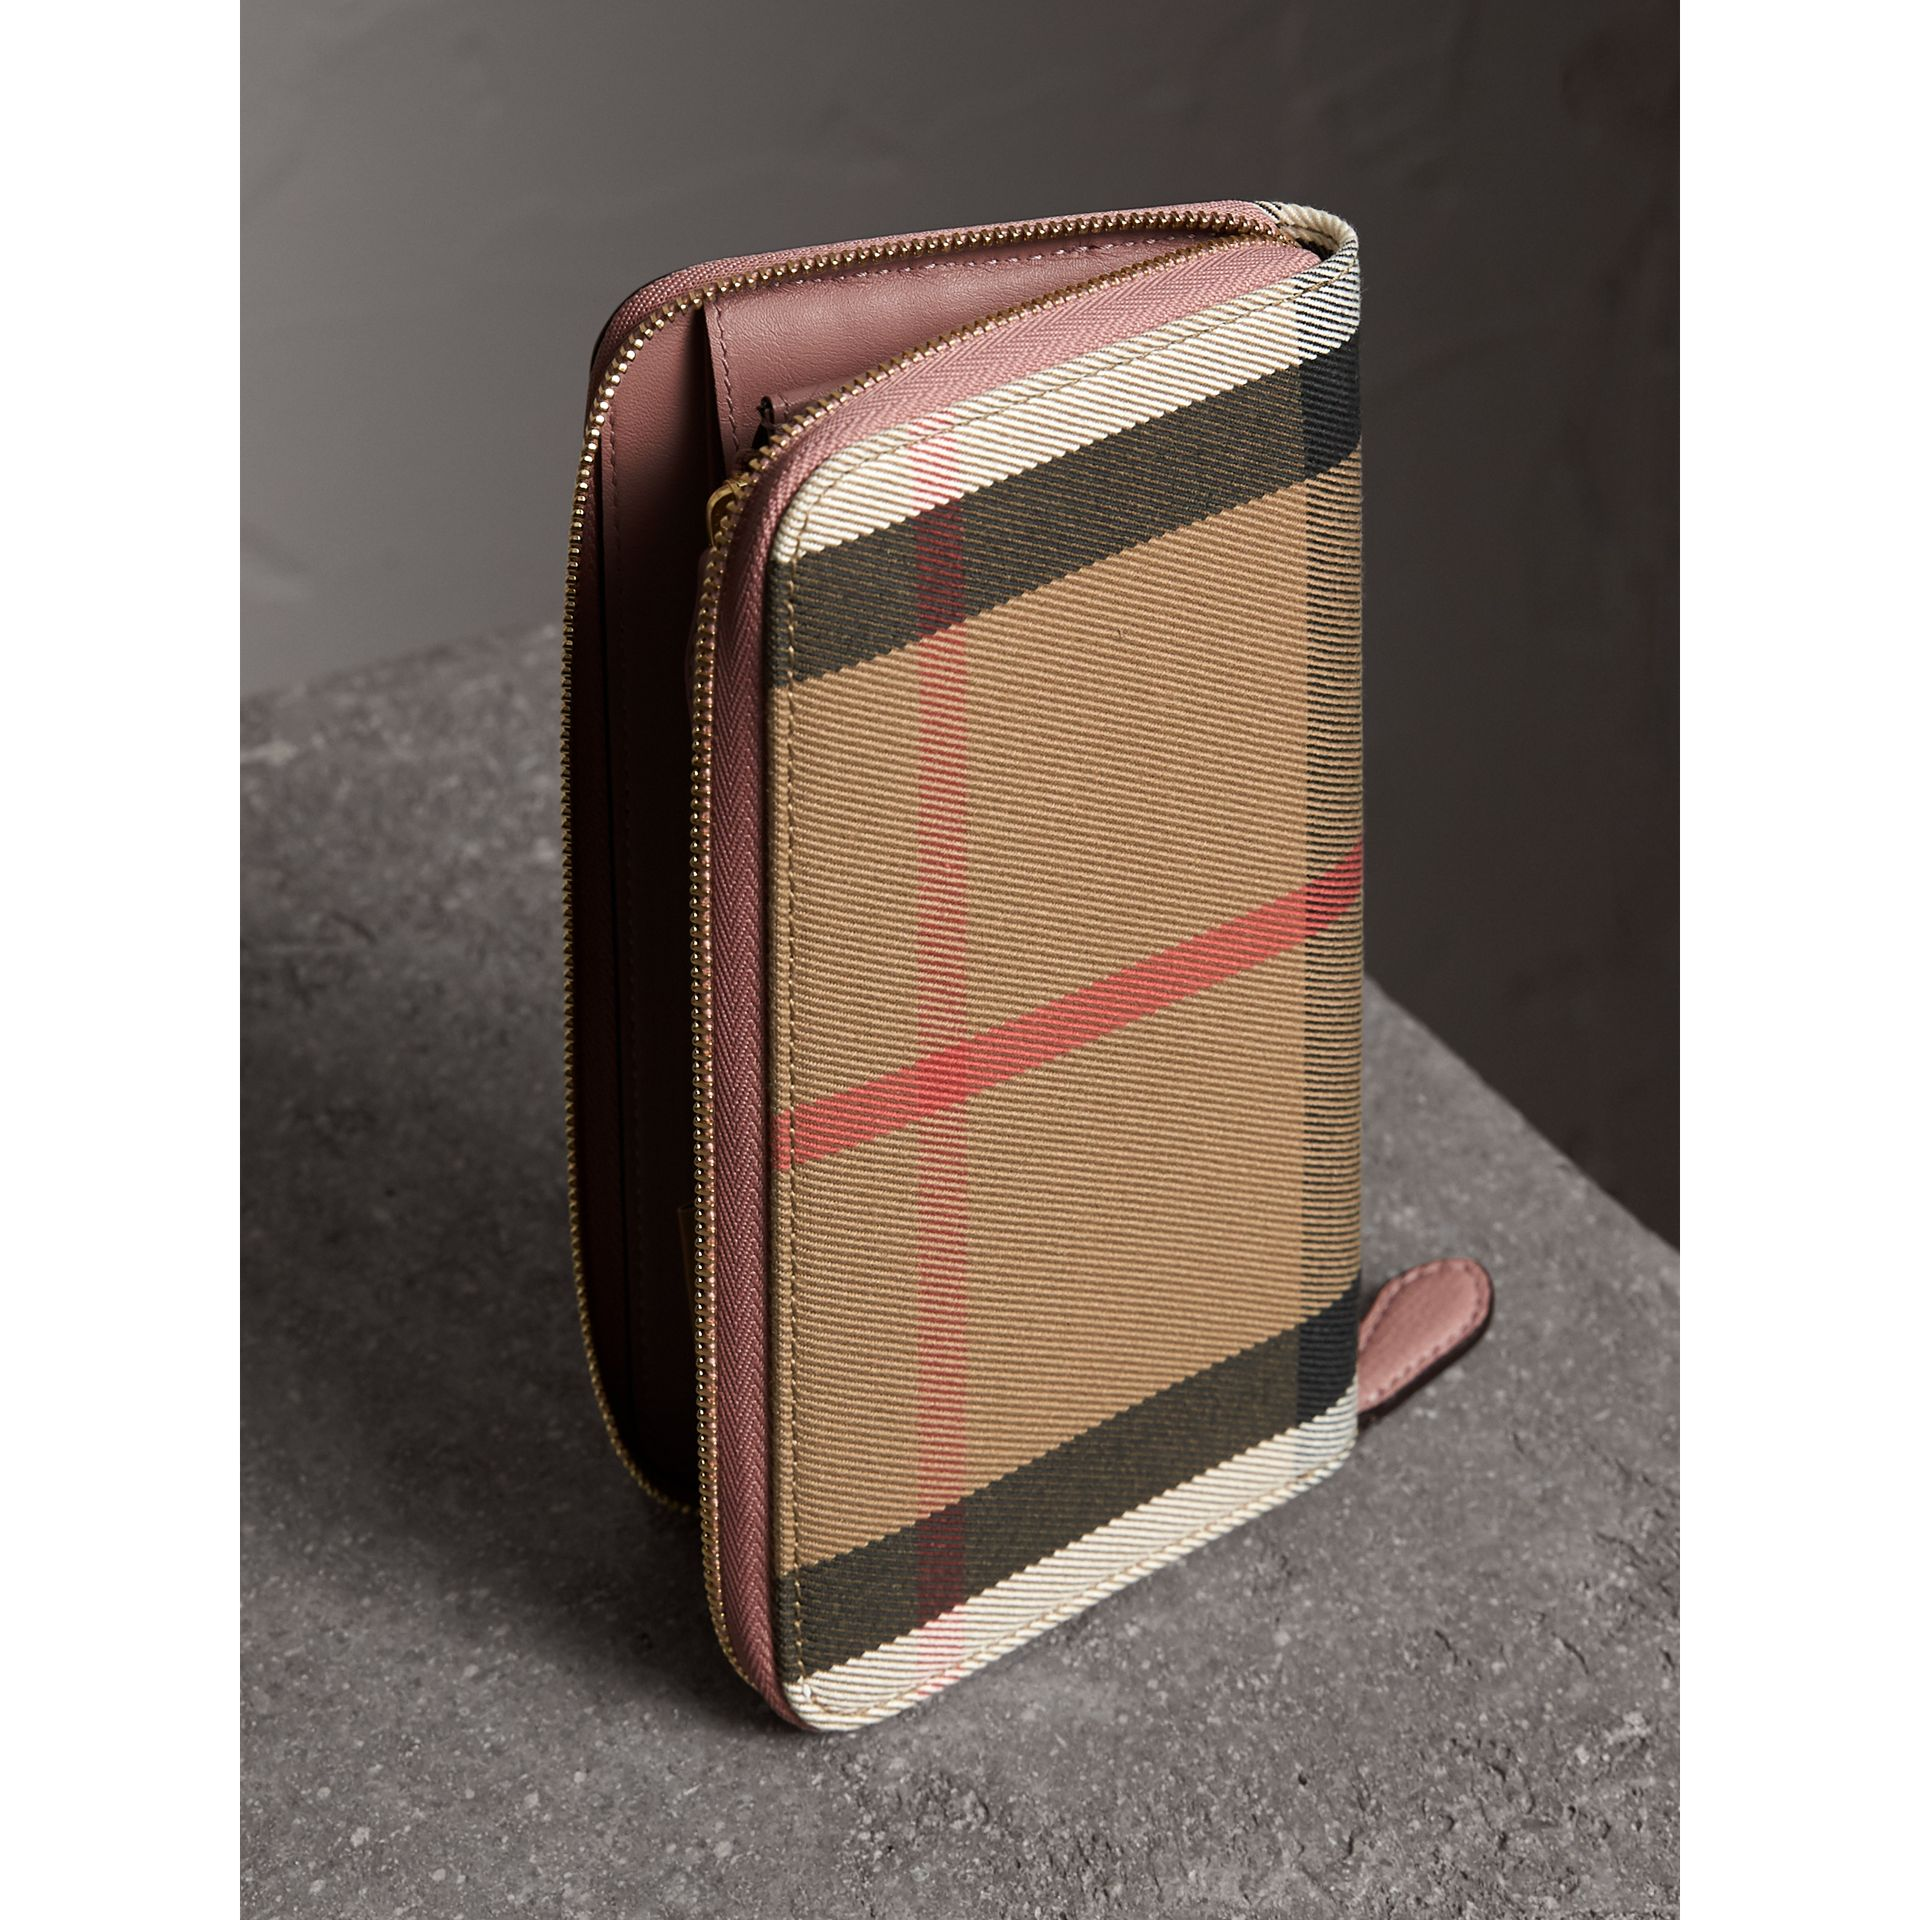 House Check and Leather Ziparound Wallet in Pale Orchid - Women | Burberry - gallery image 3